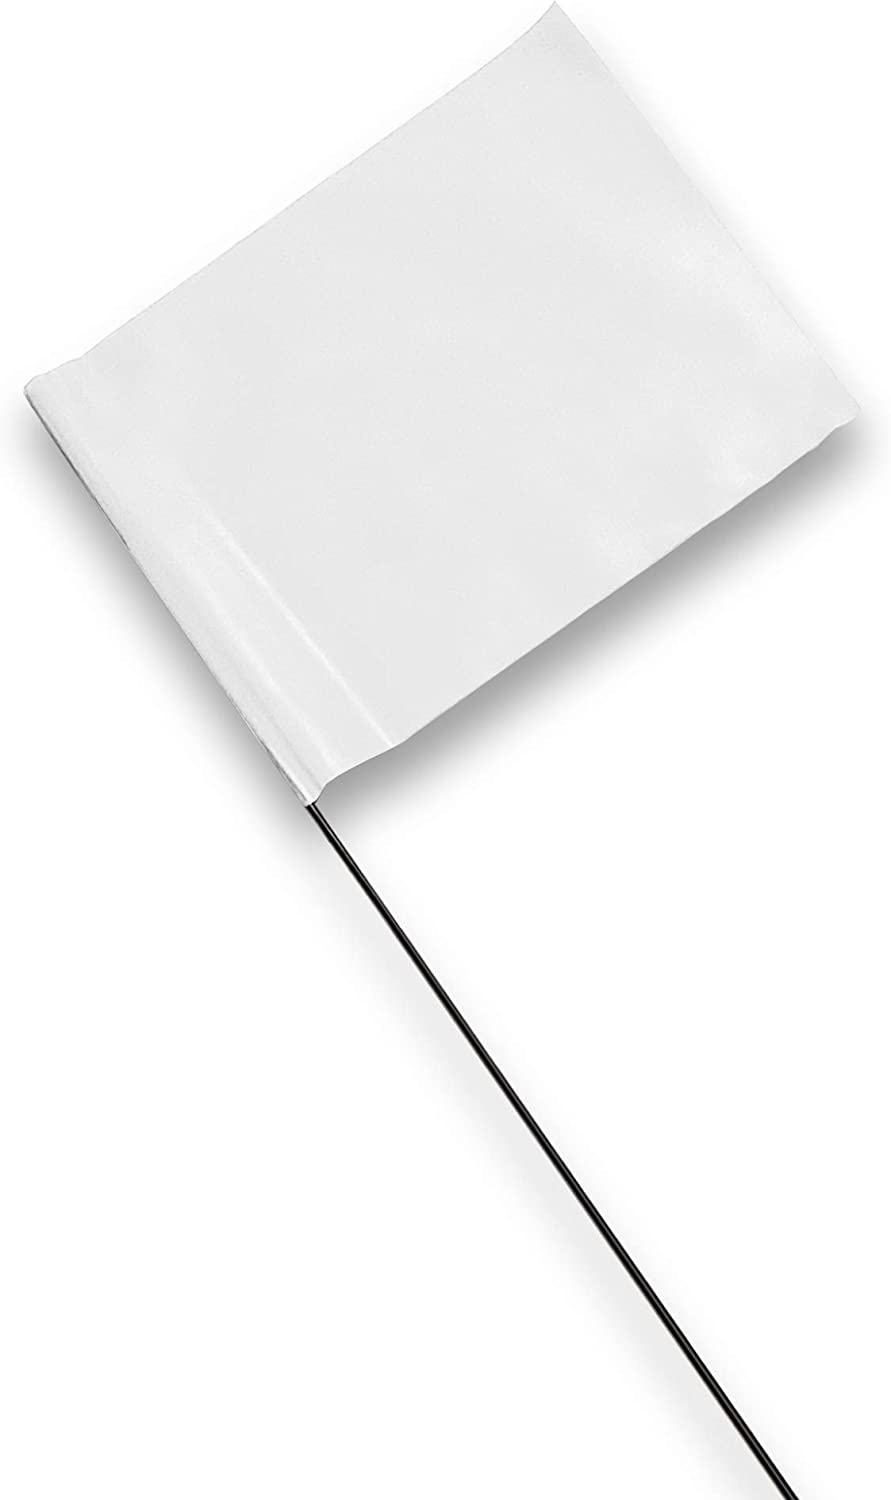 Marking Flags - 4 x 5-Inch Flag on 15-Inch Steel Wire - White, 100 Pack - Marker Flags for Irrigation, Sprinkler Flags, Lawn Flags, Yard Flags, Garden Flags, Dog Training, Invisible Fence